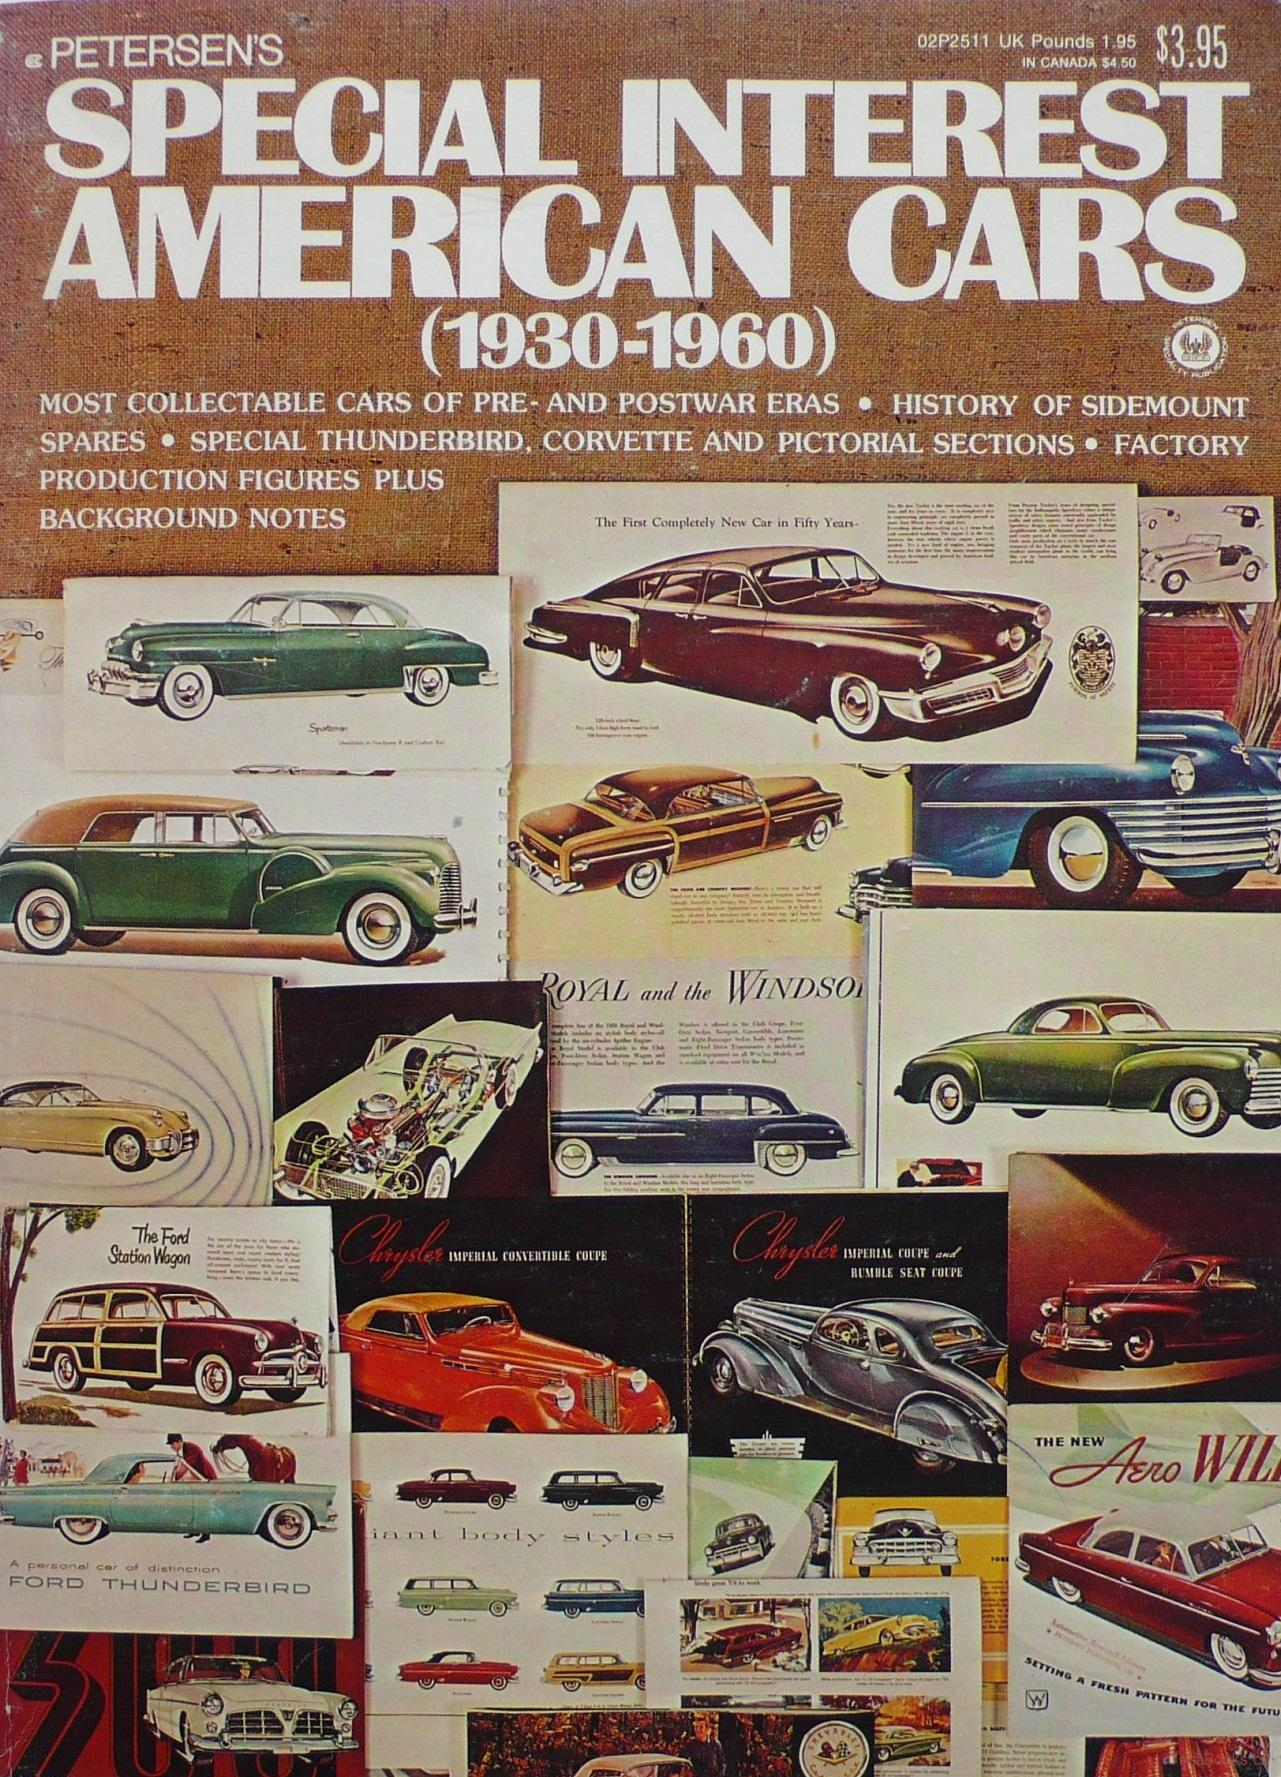 Petersen's Special Interest American cars 1930-1960